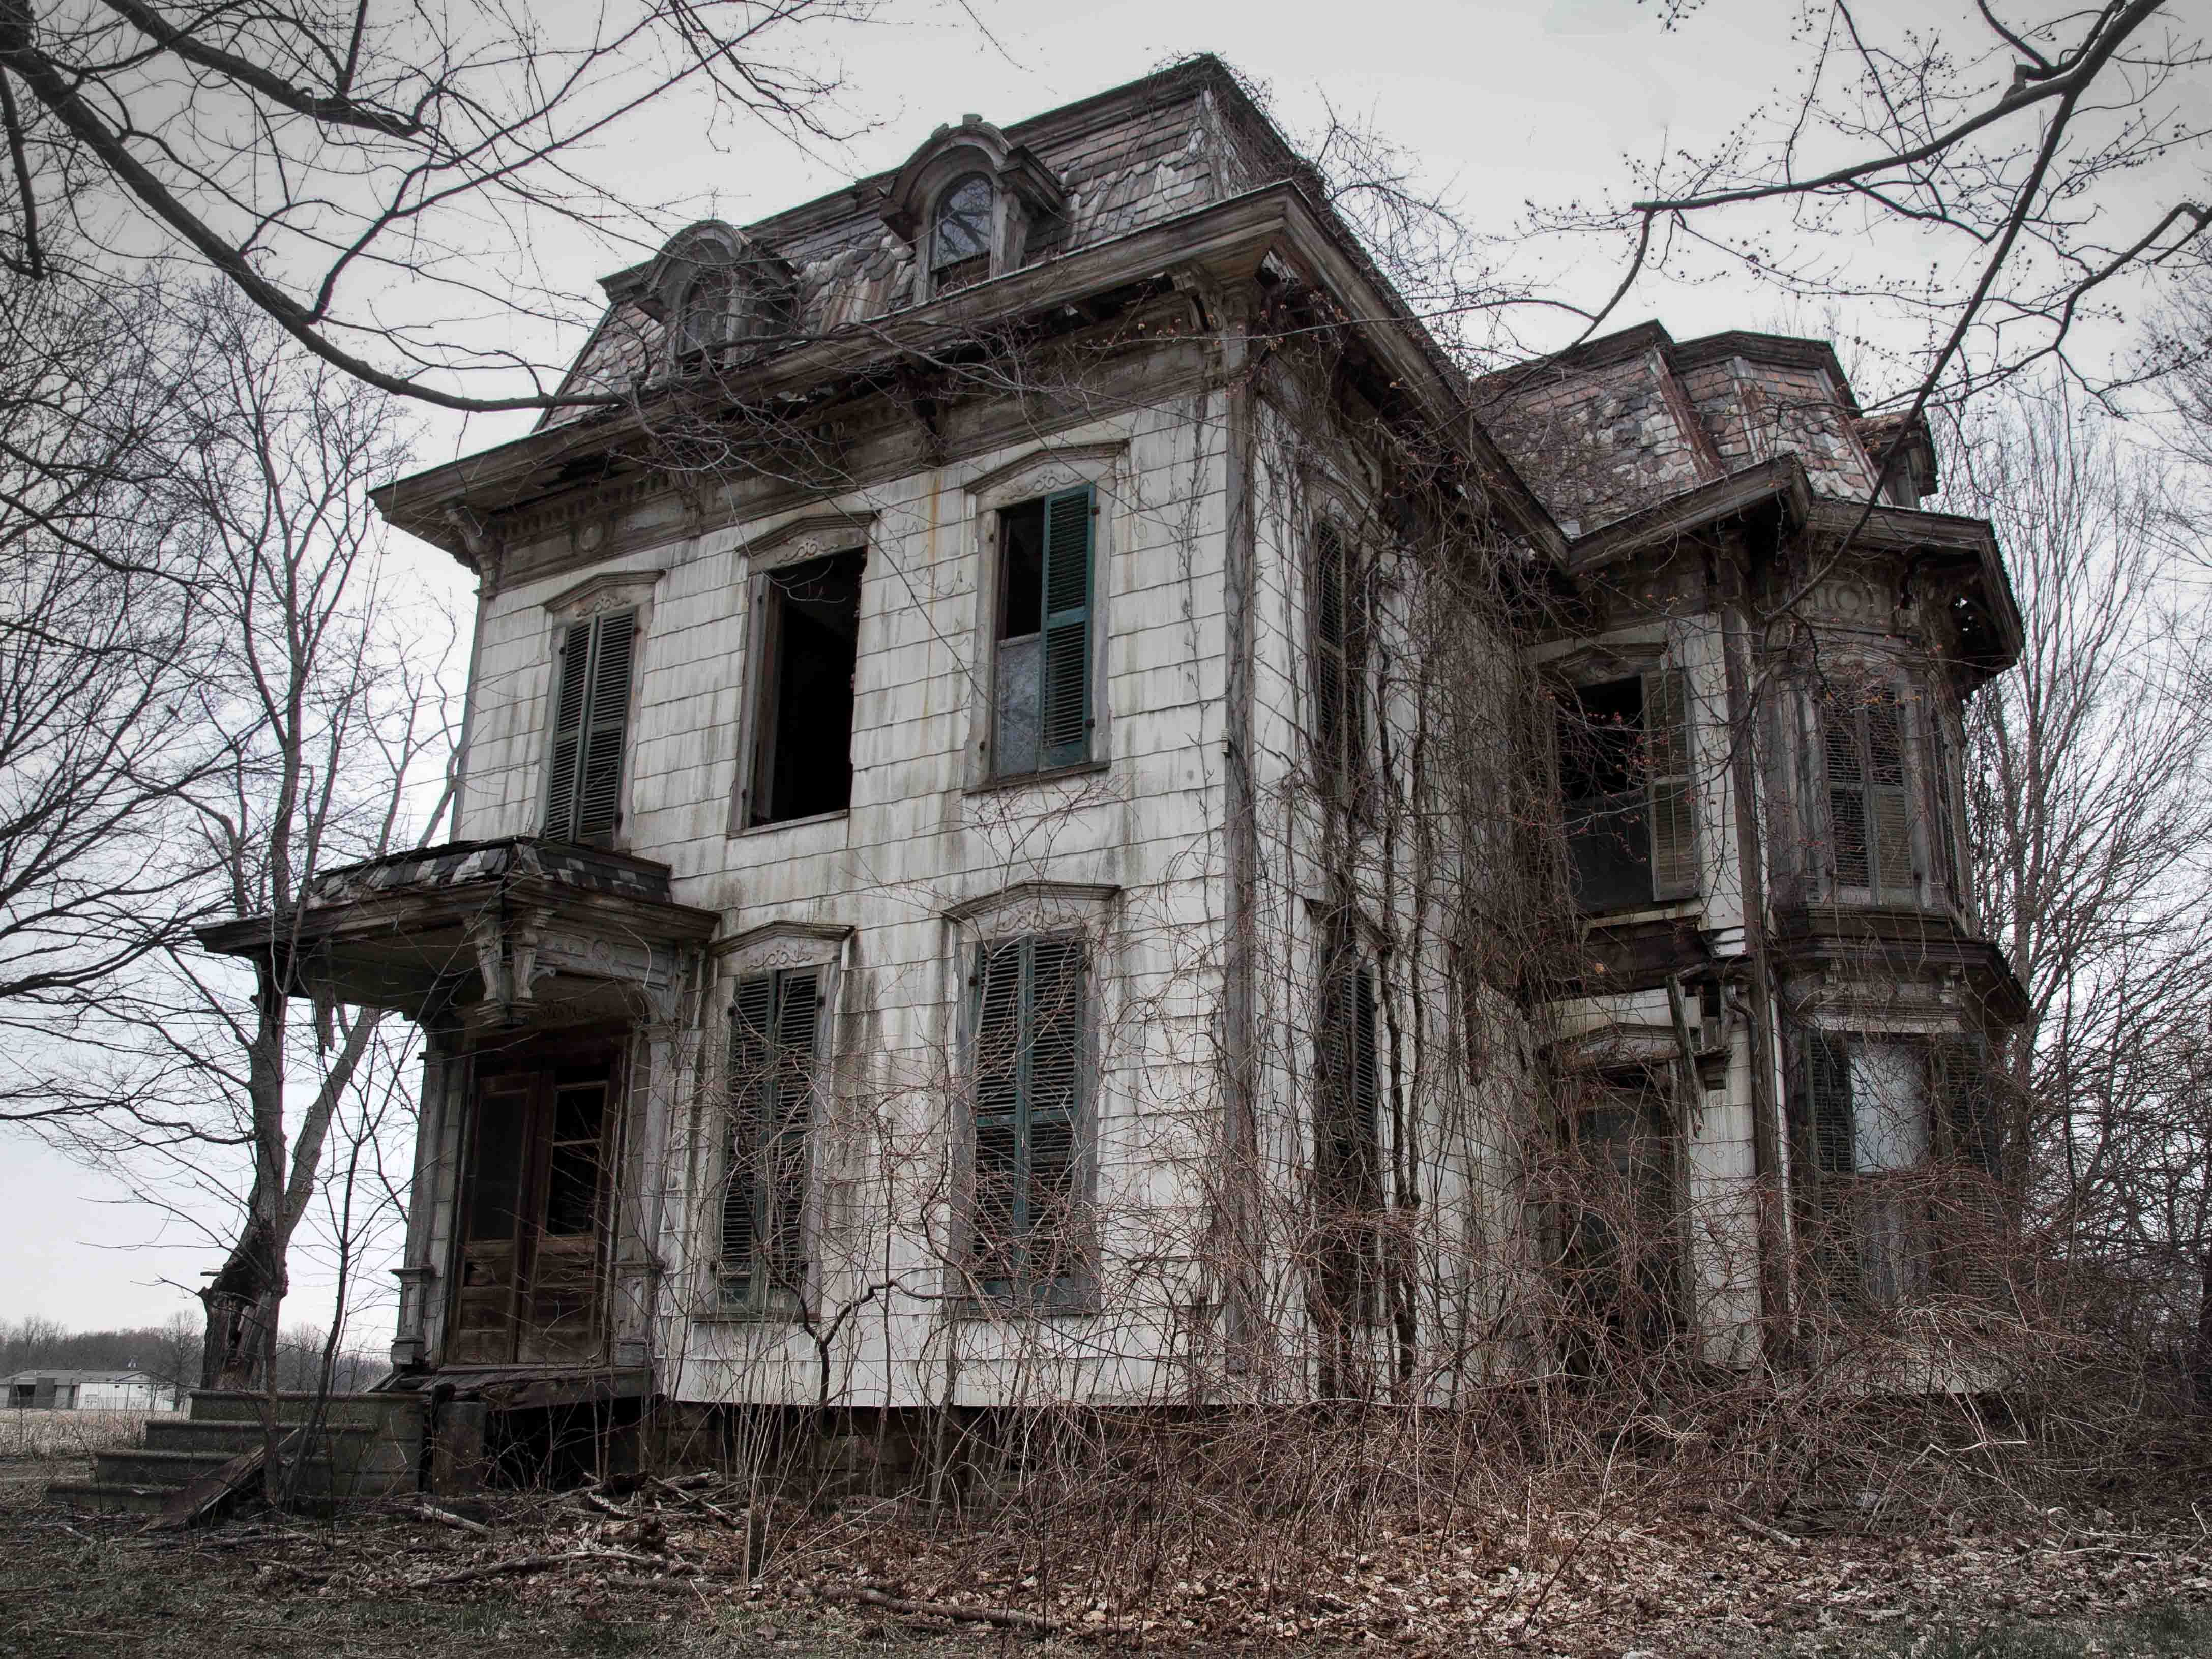 It is frequently suspected that this Ohio house is where local witches practice their craft. The original owner, known as the Milan Witch, is rumored to be buried underneath the front porch.